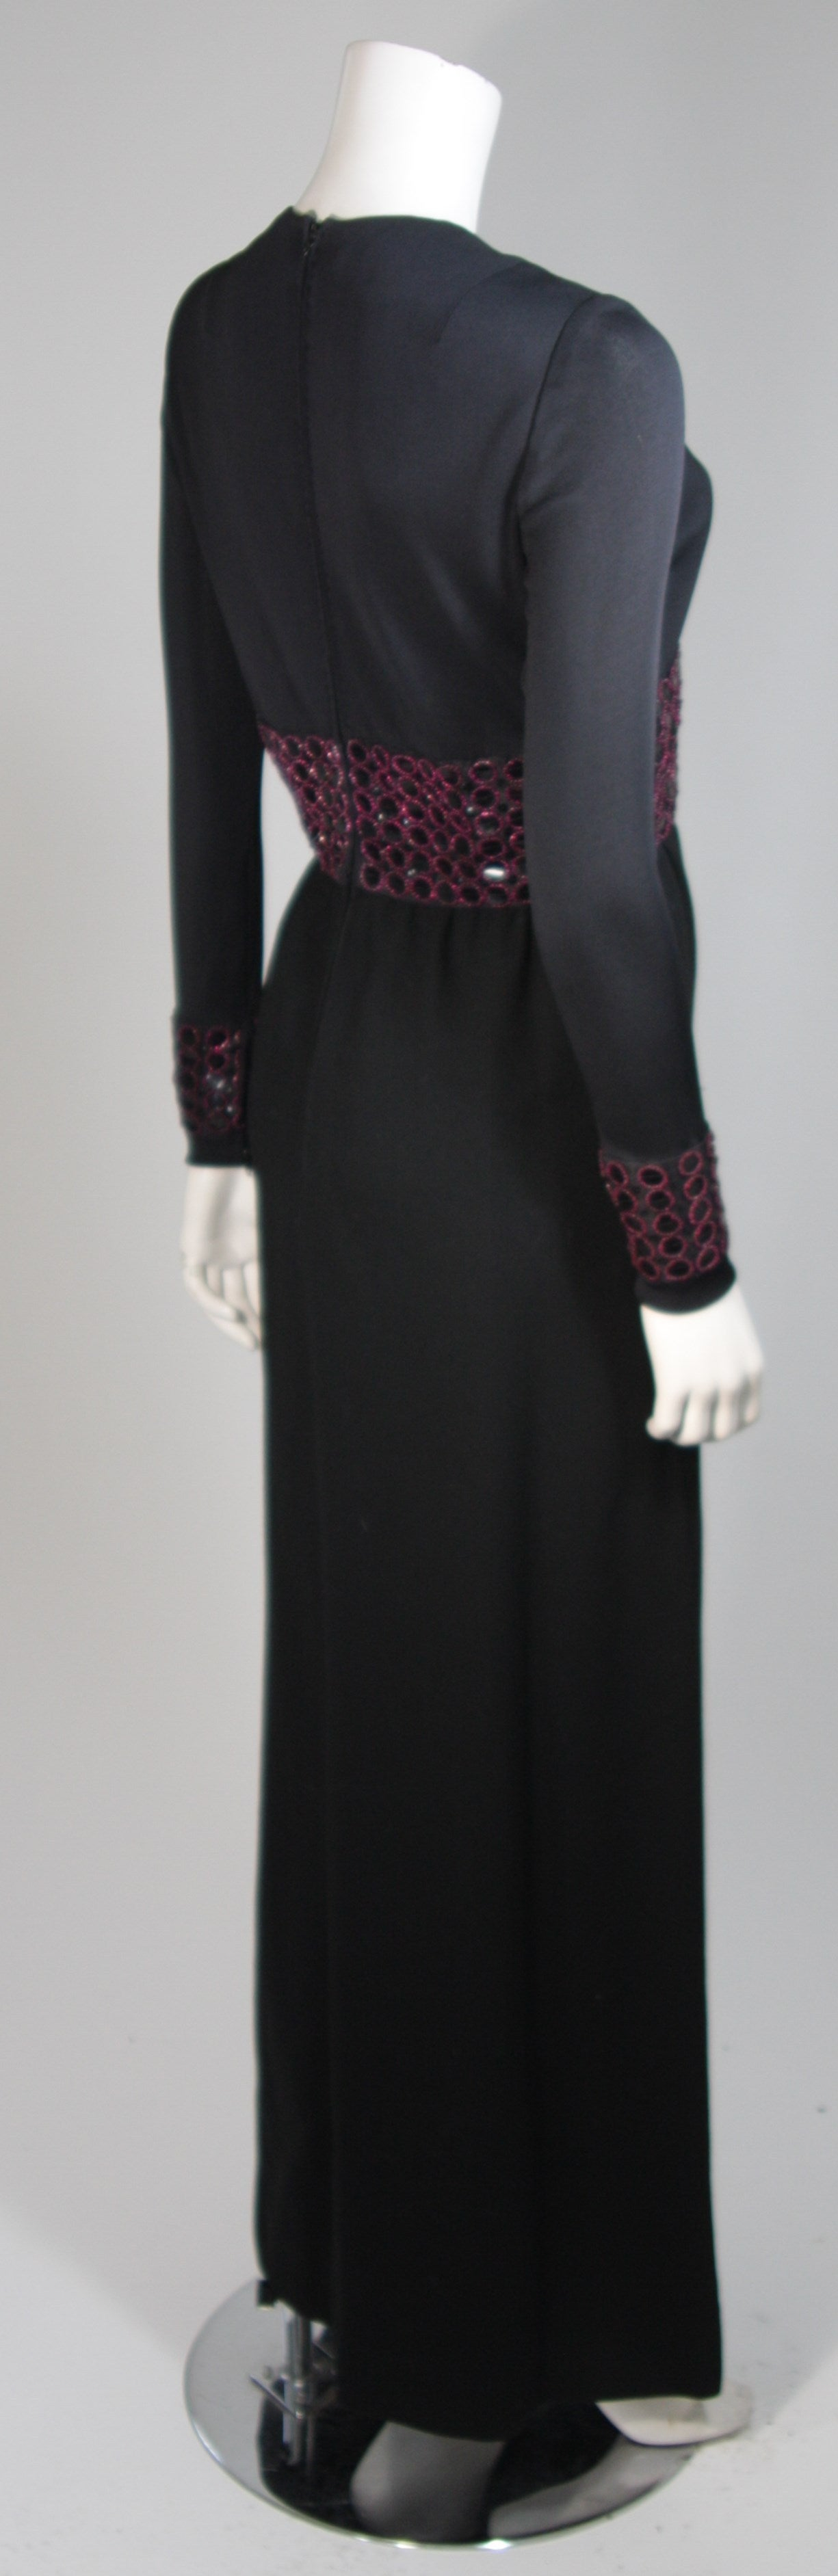 Chester Weinberg Black Long Sleeve Gown With Beaded Waist Size S M 7